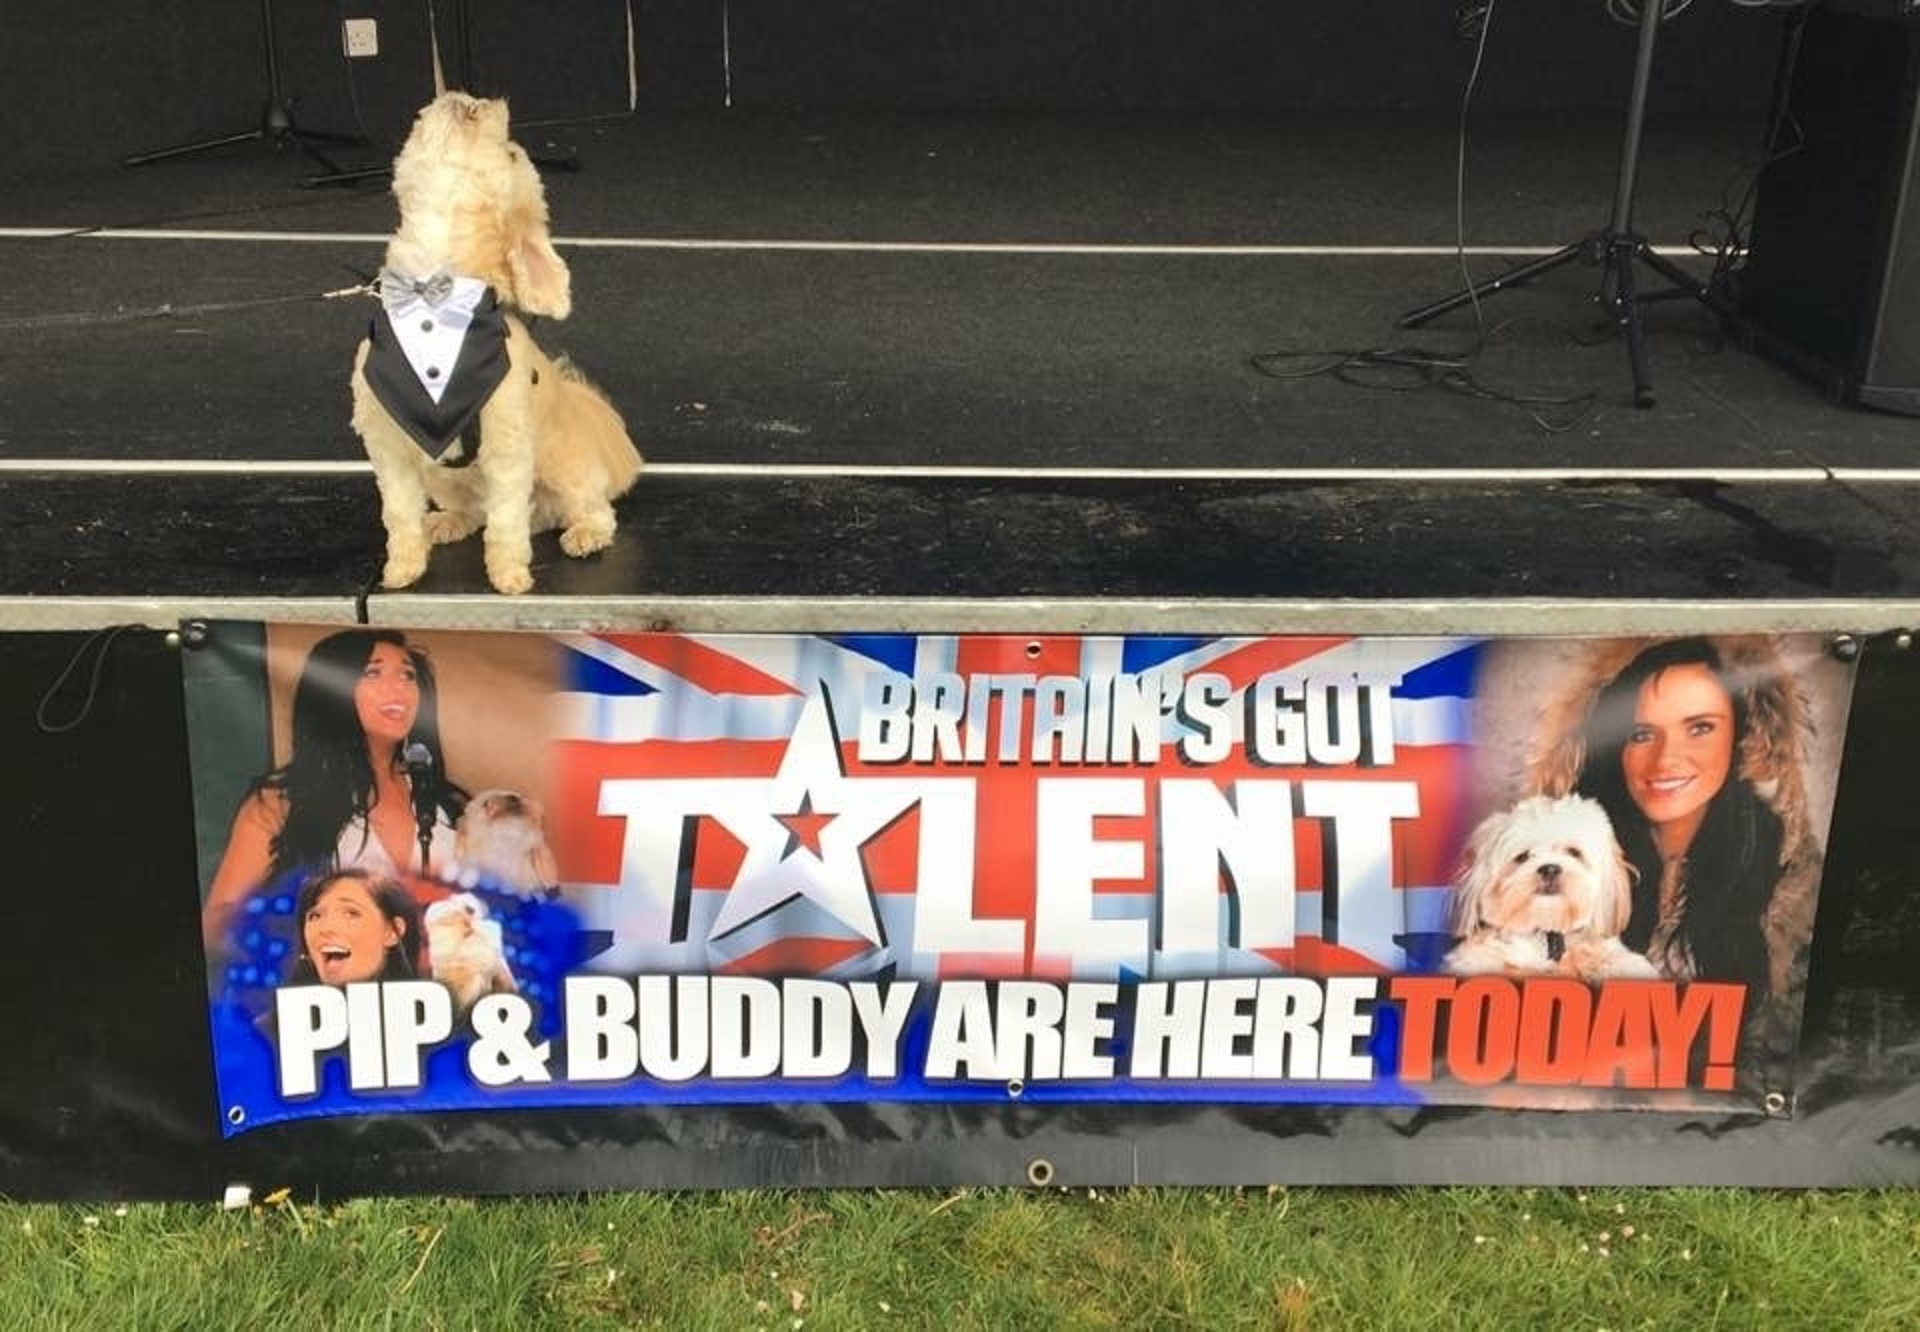 Buddy the dog, who sang with Pippa Langhorne on Britain's Got Talent